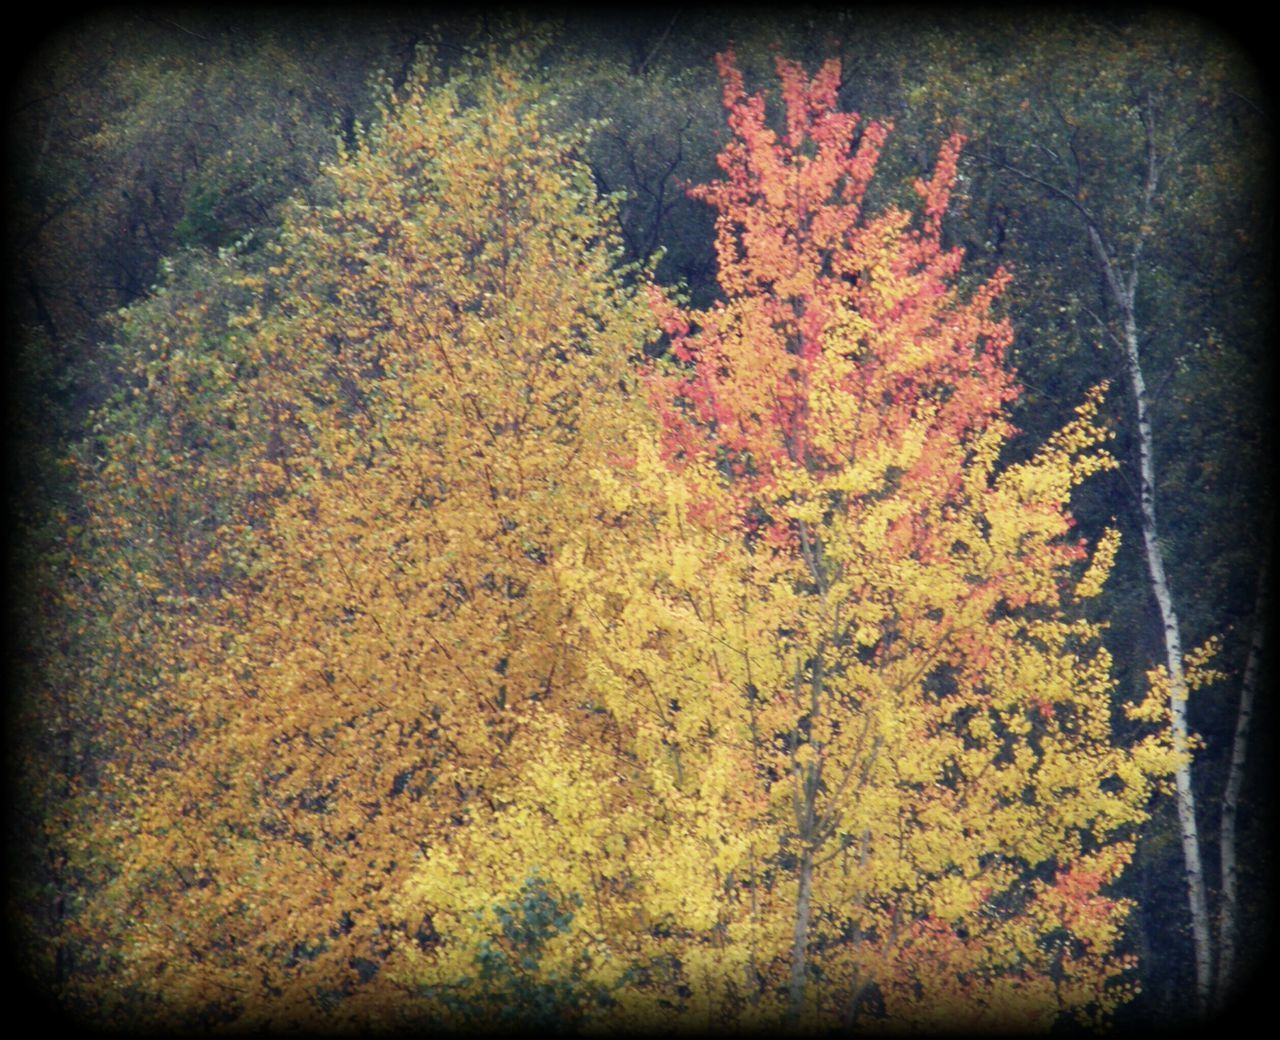 autumn, change, leaf, tree, nature, no people, beauty in nature, growth, maple tree, tranquility, yellow, maple leaf, outdoors, maple, day, close-up, scenics